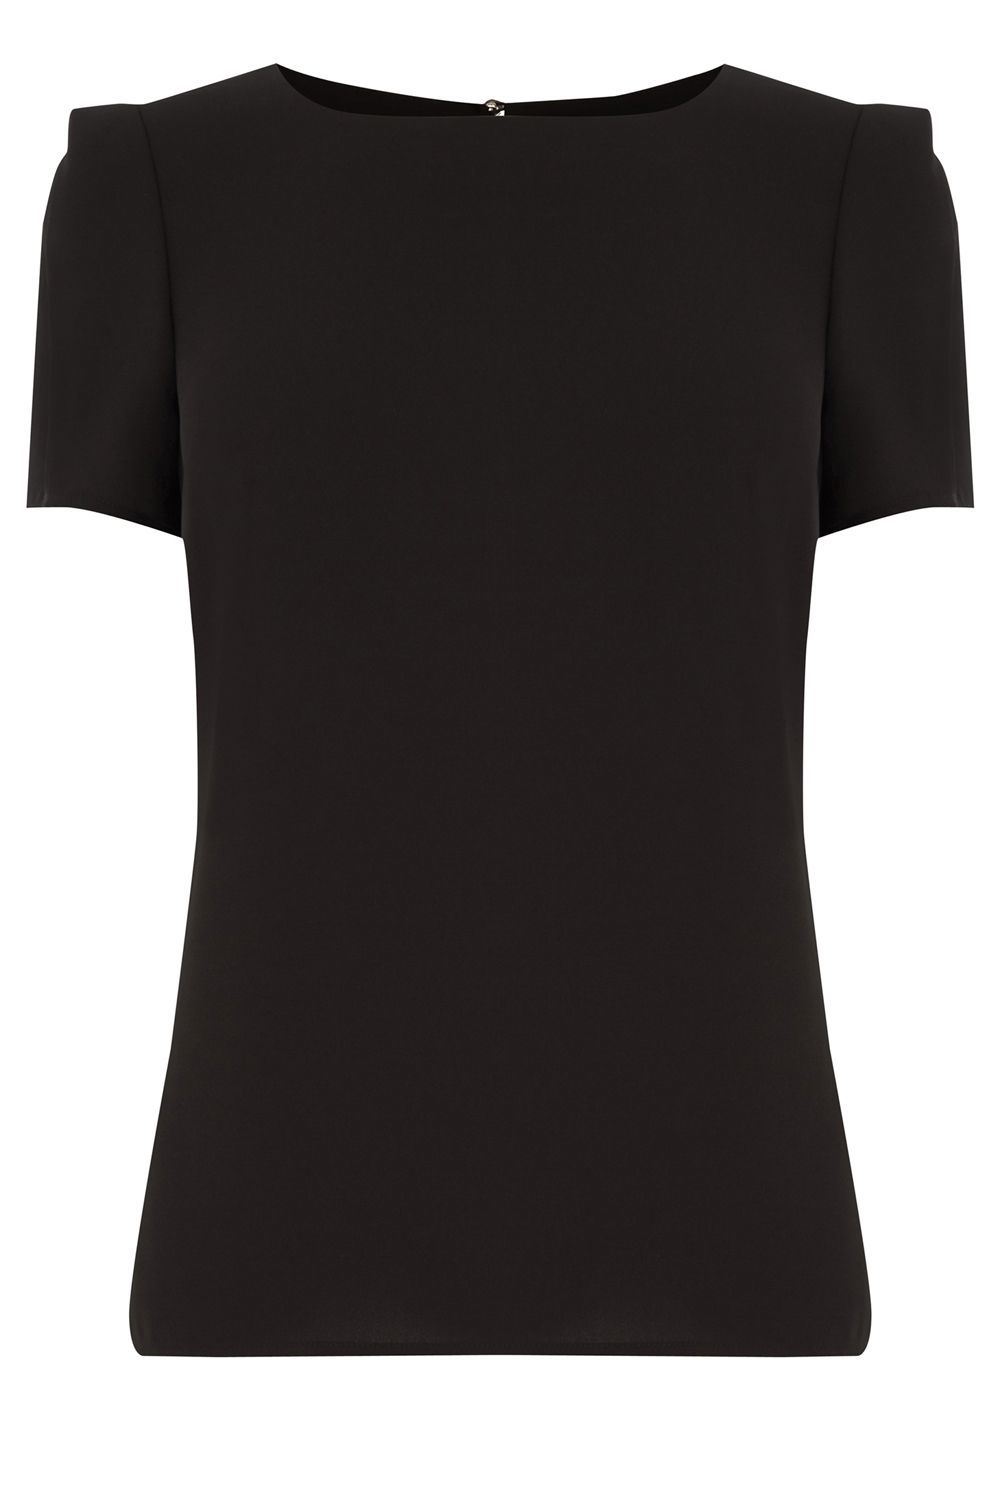 Formal T Shirt, Black - neckline: round neck; pattern: plain; style: t-shirt; predominant colour: black; occasions: casual, work, creative work; length: standard; fibres: polyester/polyamide - 100%; fit: body skimming; sleeve length: short sleeve; sleeve style: standard; pattern type: fabric; texture group: other - light to midweight; season: a/w 2015; wardrobe: basic